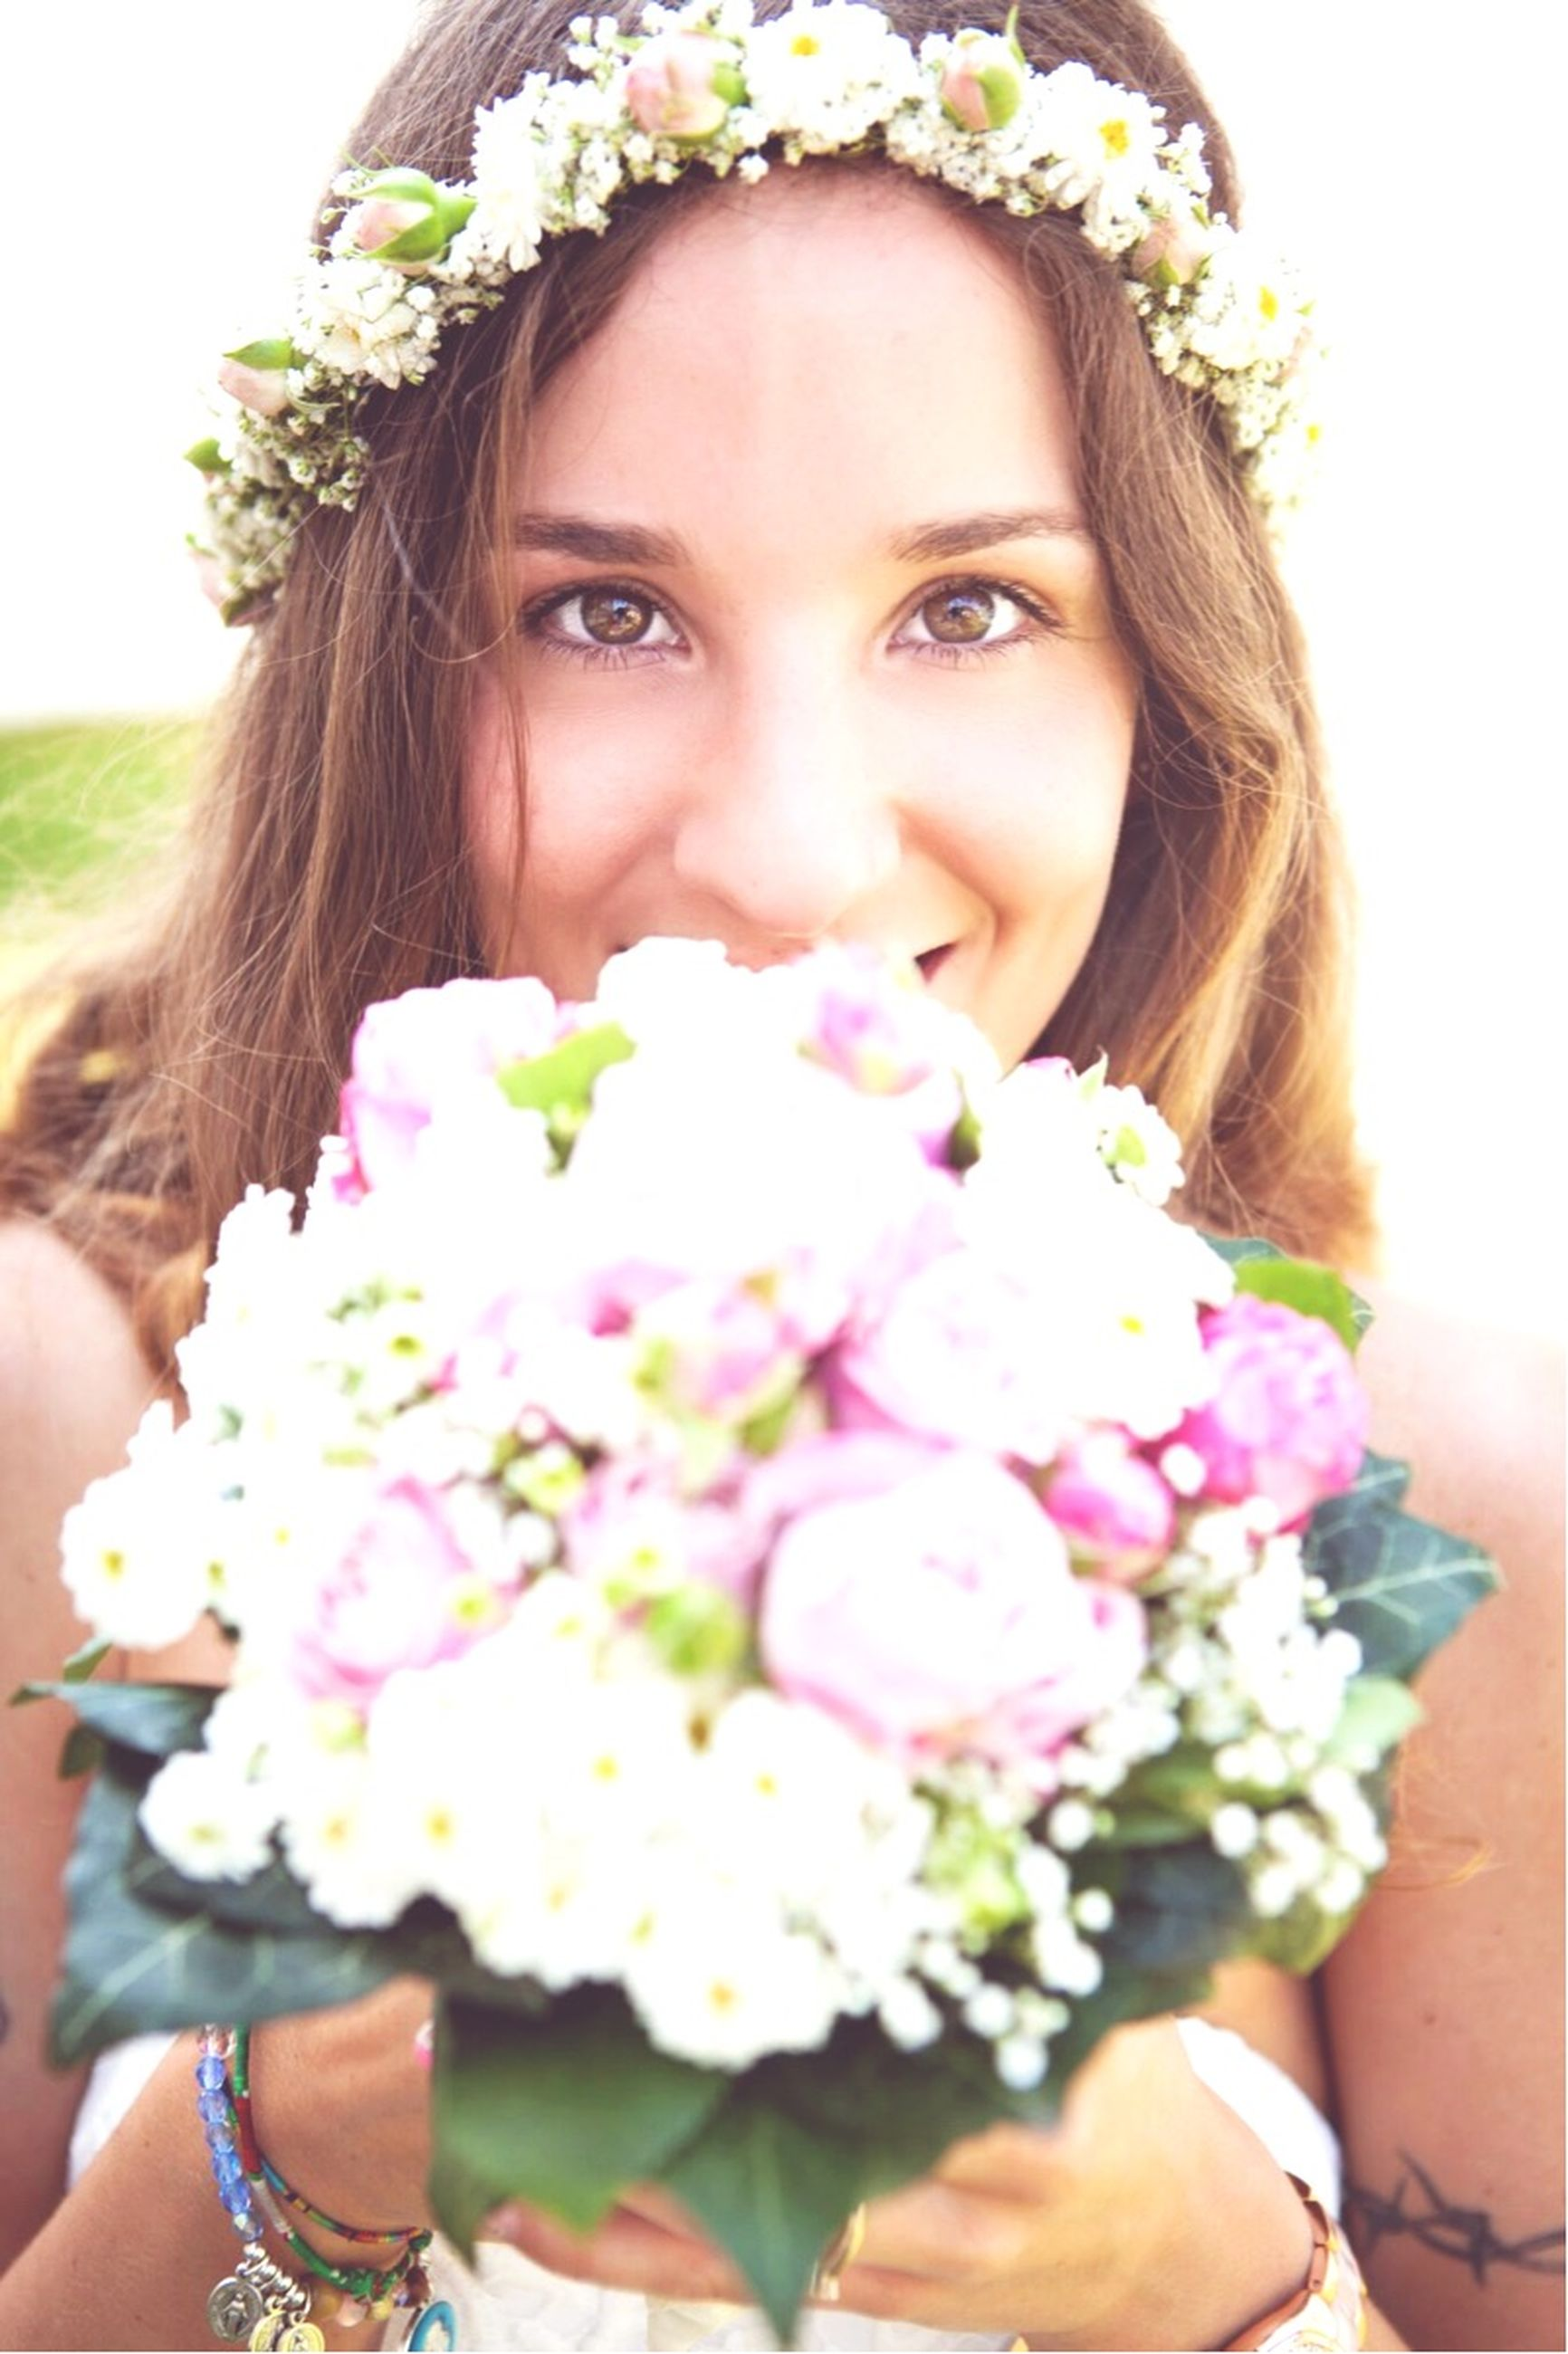 flower, young women, person, portrait, looking at camera, young adult, lifestyles, front view, freshness, leisure activity, smiling, fragility, long hair, casual clothing, close-up, headshot, focus on foreground